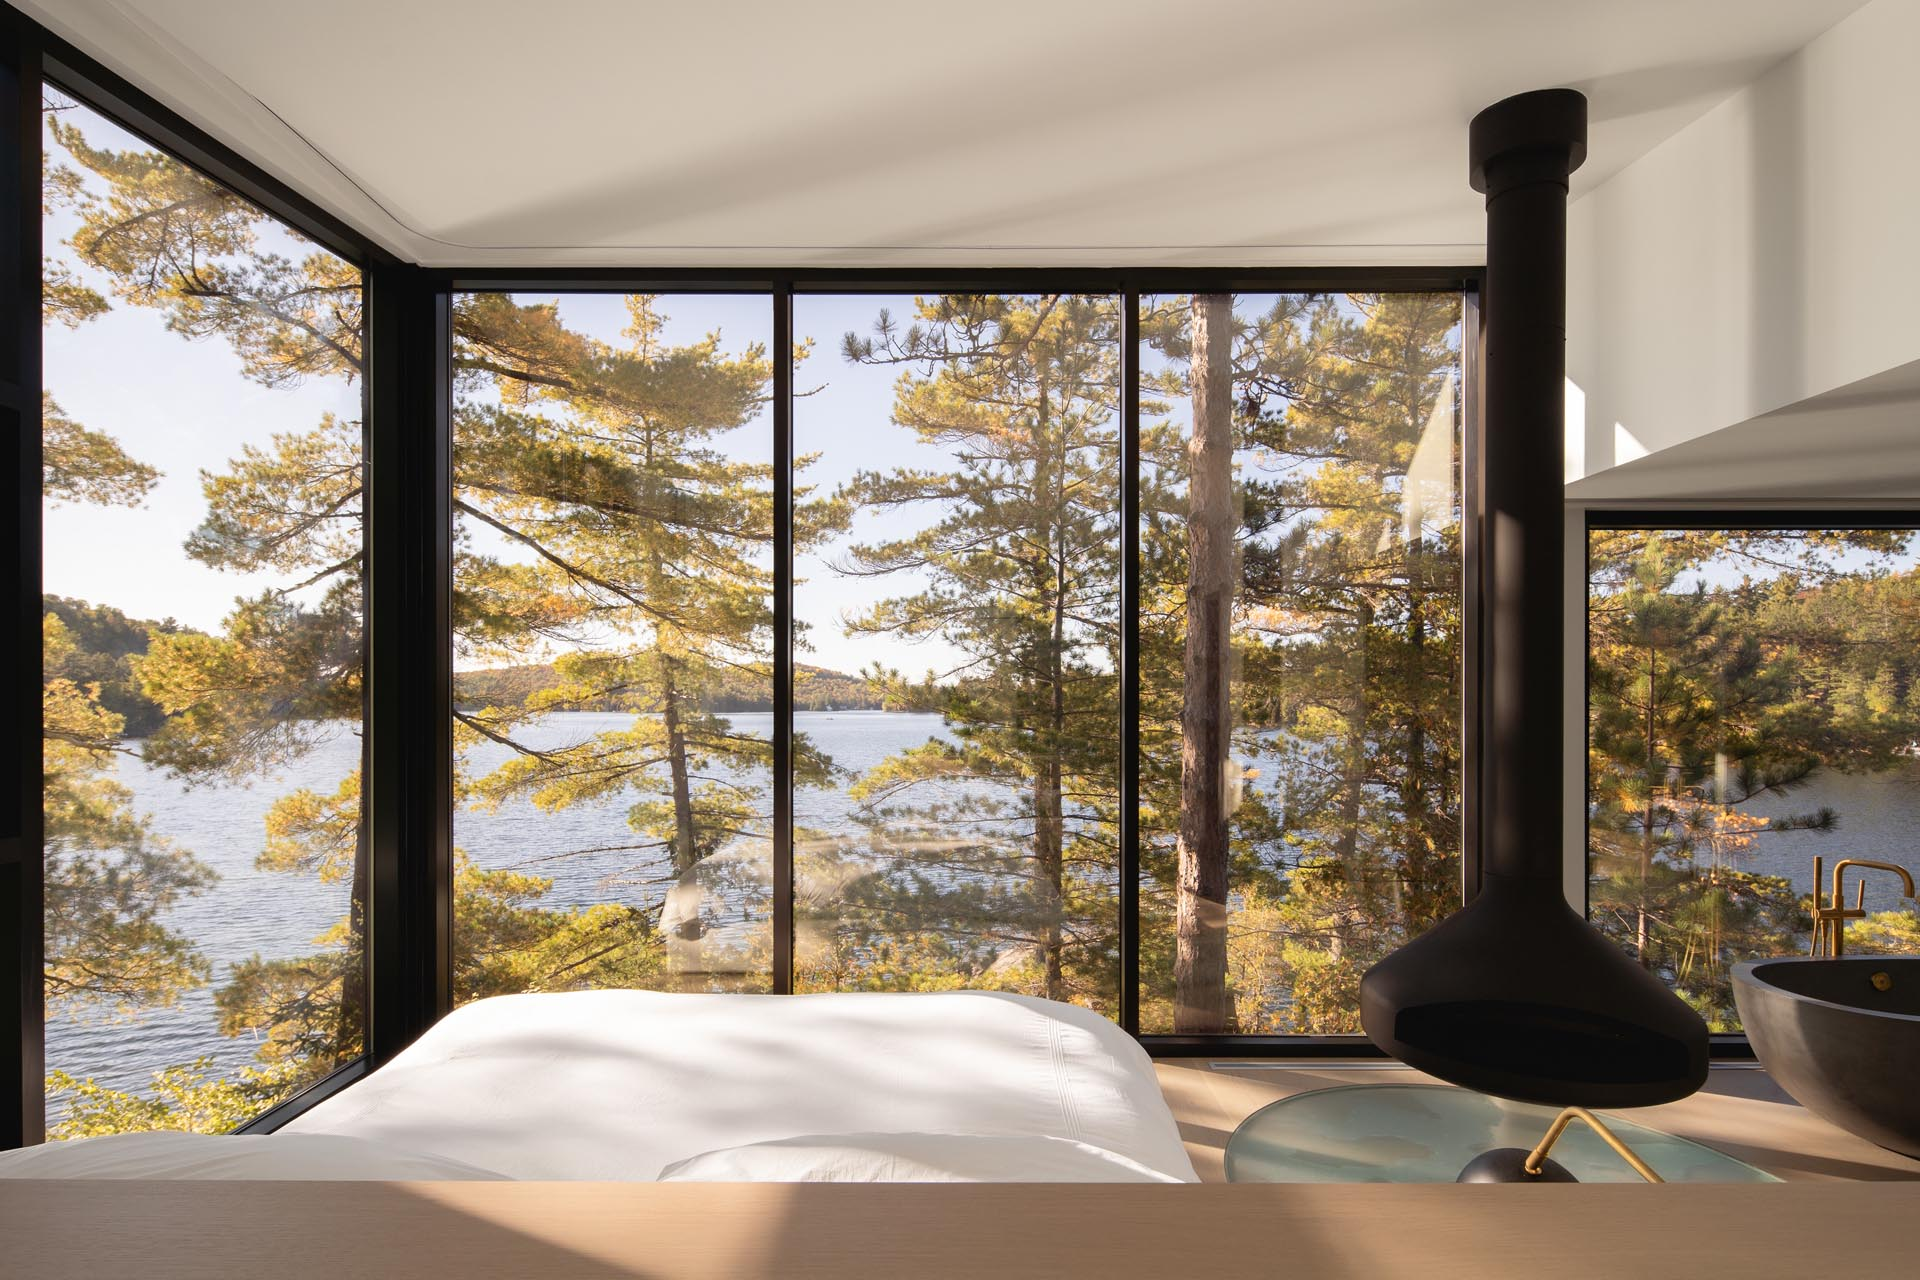 A modern master bedroom with floor-to-ceiling windows, a suspended black fireplace, and a freestanding bathtub.